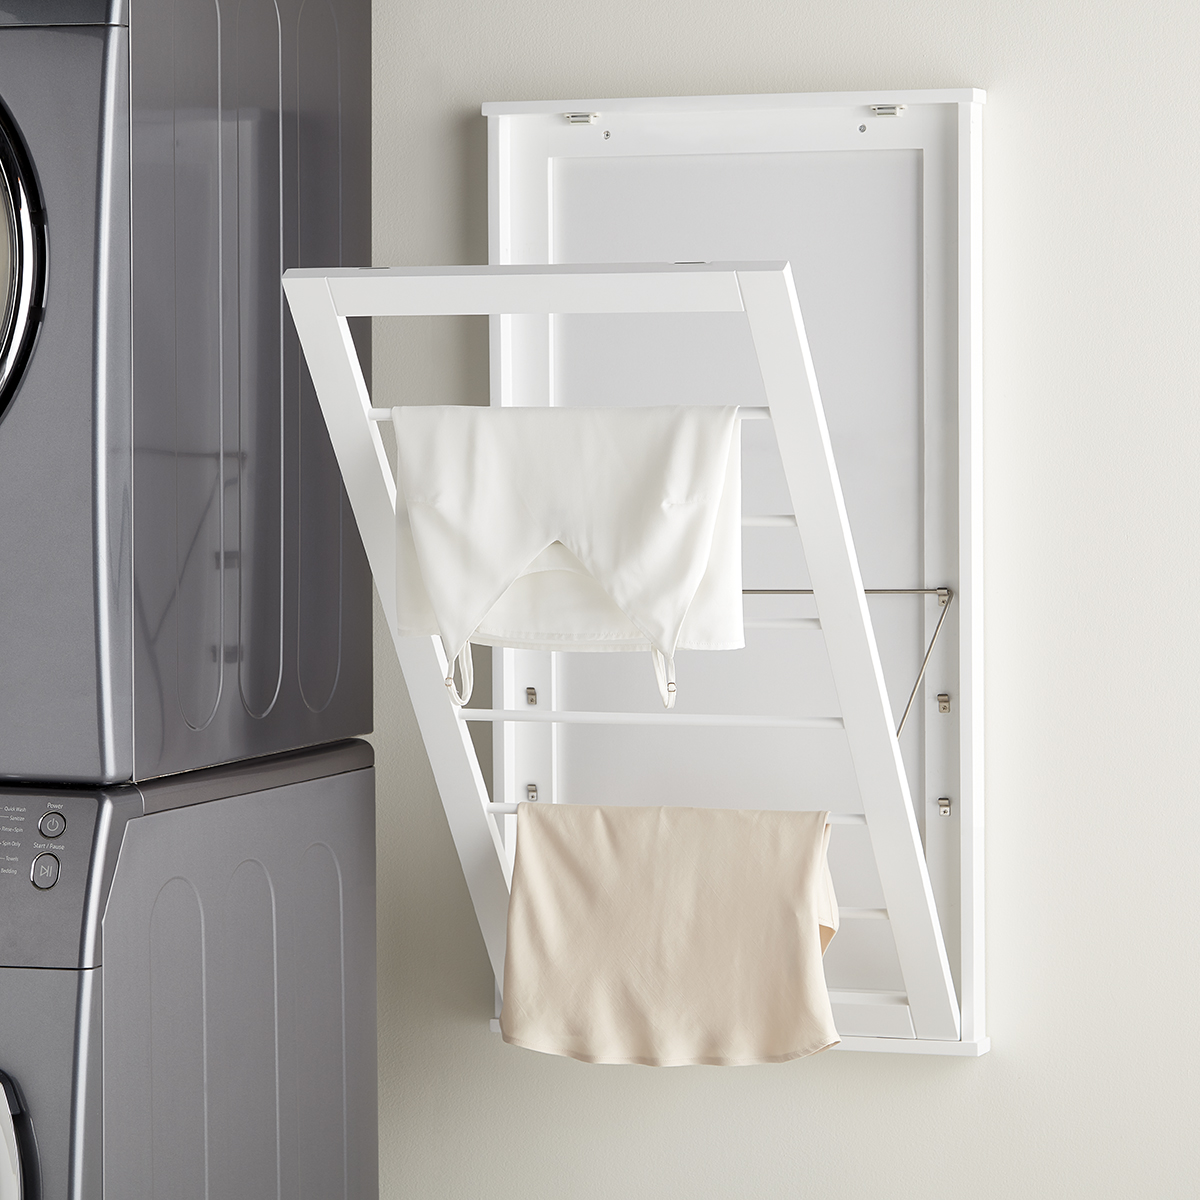 6-Tier Adjustable Wall-Mounted Drying Rack